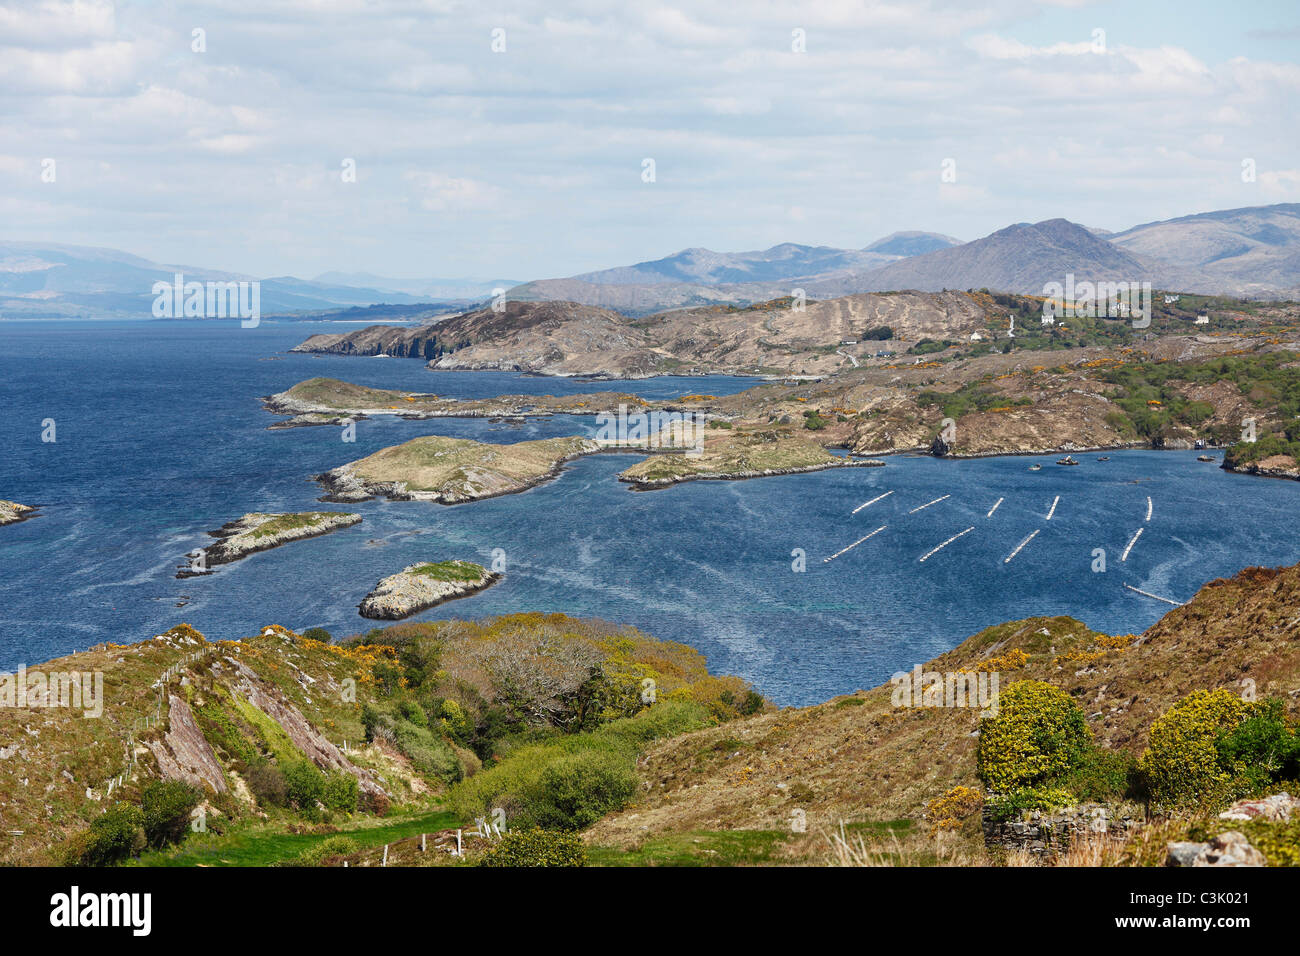 Ireland, Cork, View of beara peninsula with cleanderry harbour - Stock Image